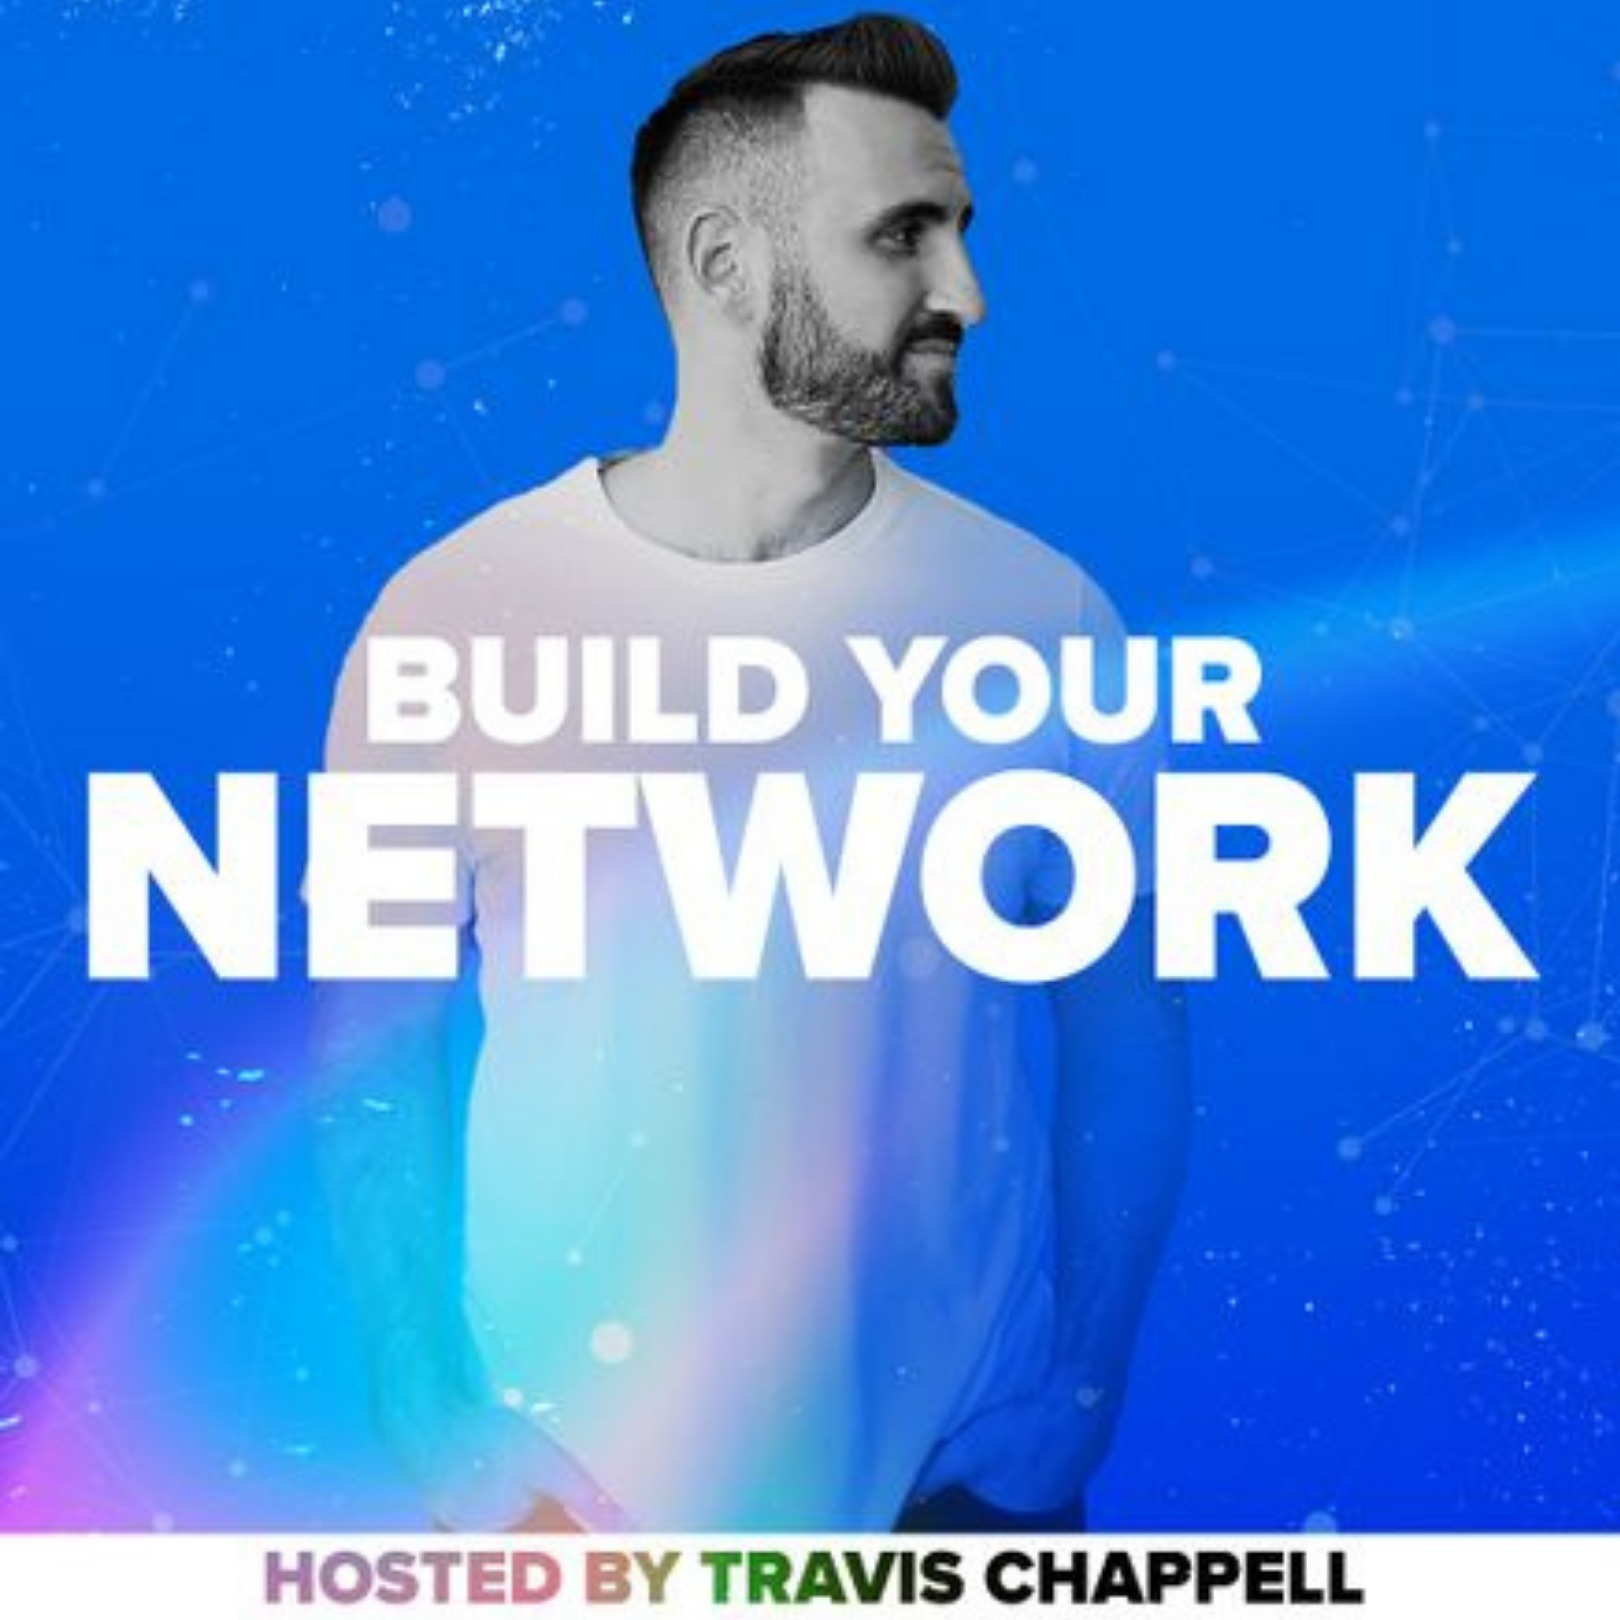 693: Travis Chappell | The Final Episode of Build Your Network